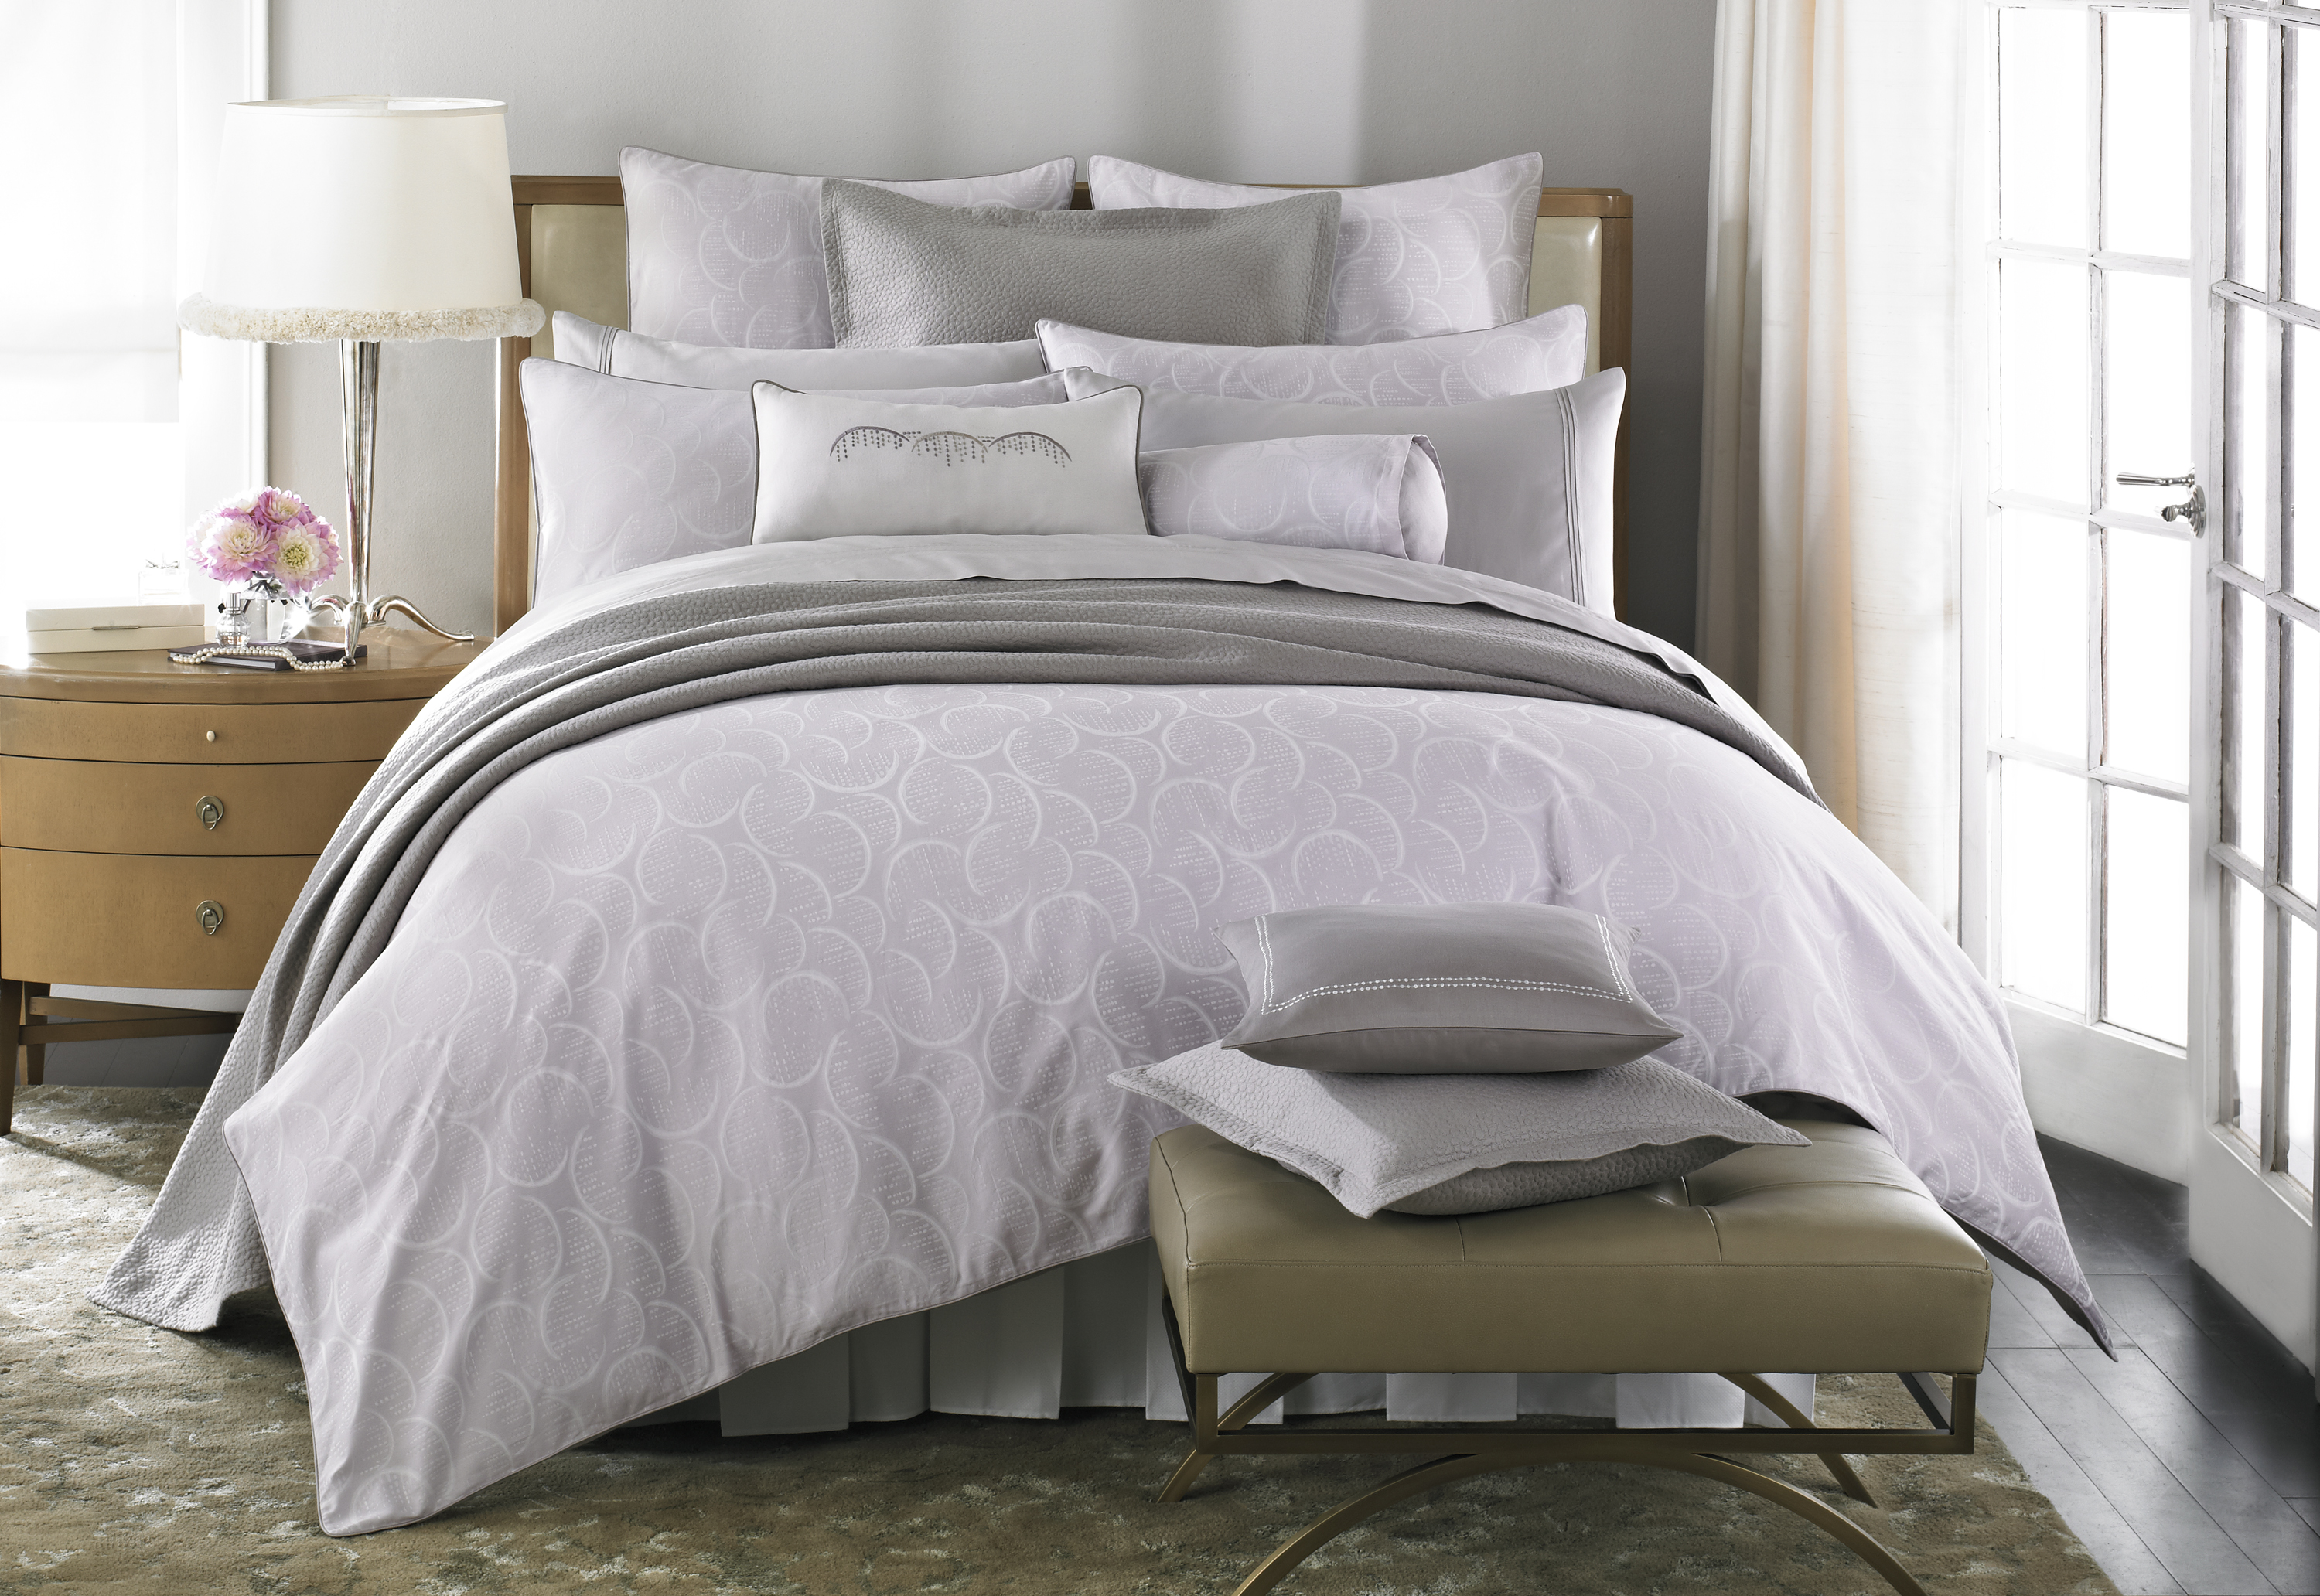 DIVINE bed ensemble from Barbara Barry Dream (Spring 2012).  Available at Bloomingdale's and other retailers February 2012.  Photo credit:  Courtesy of Barbara Barry Inc.